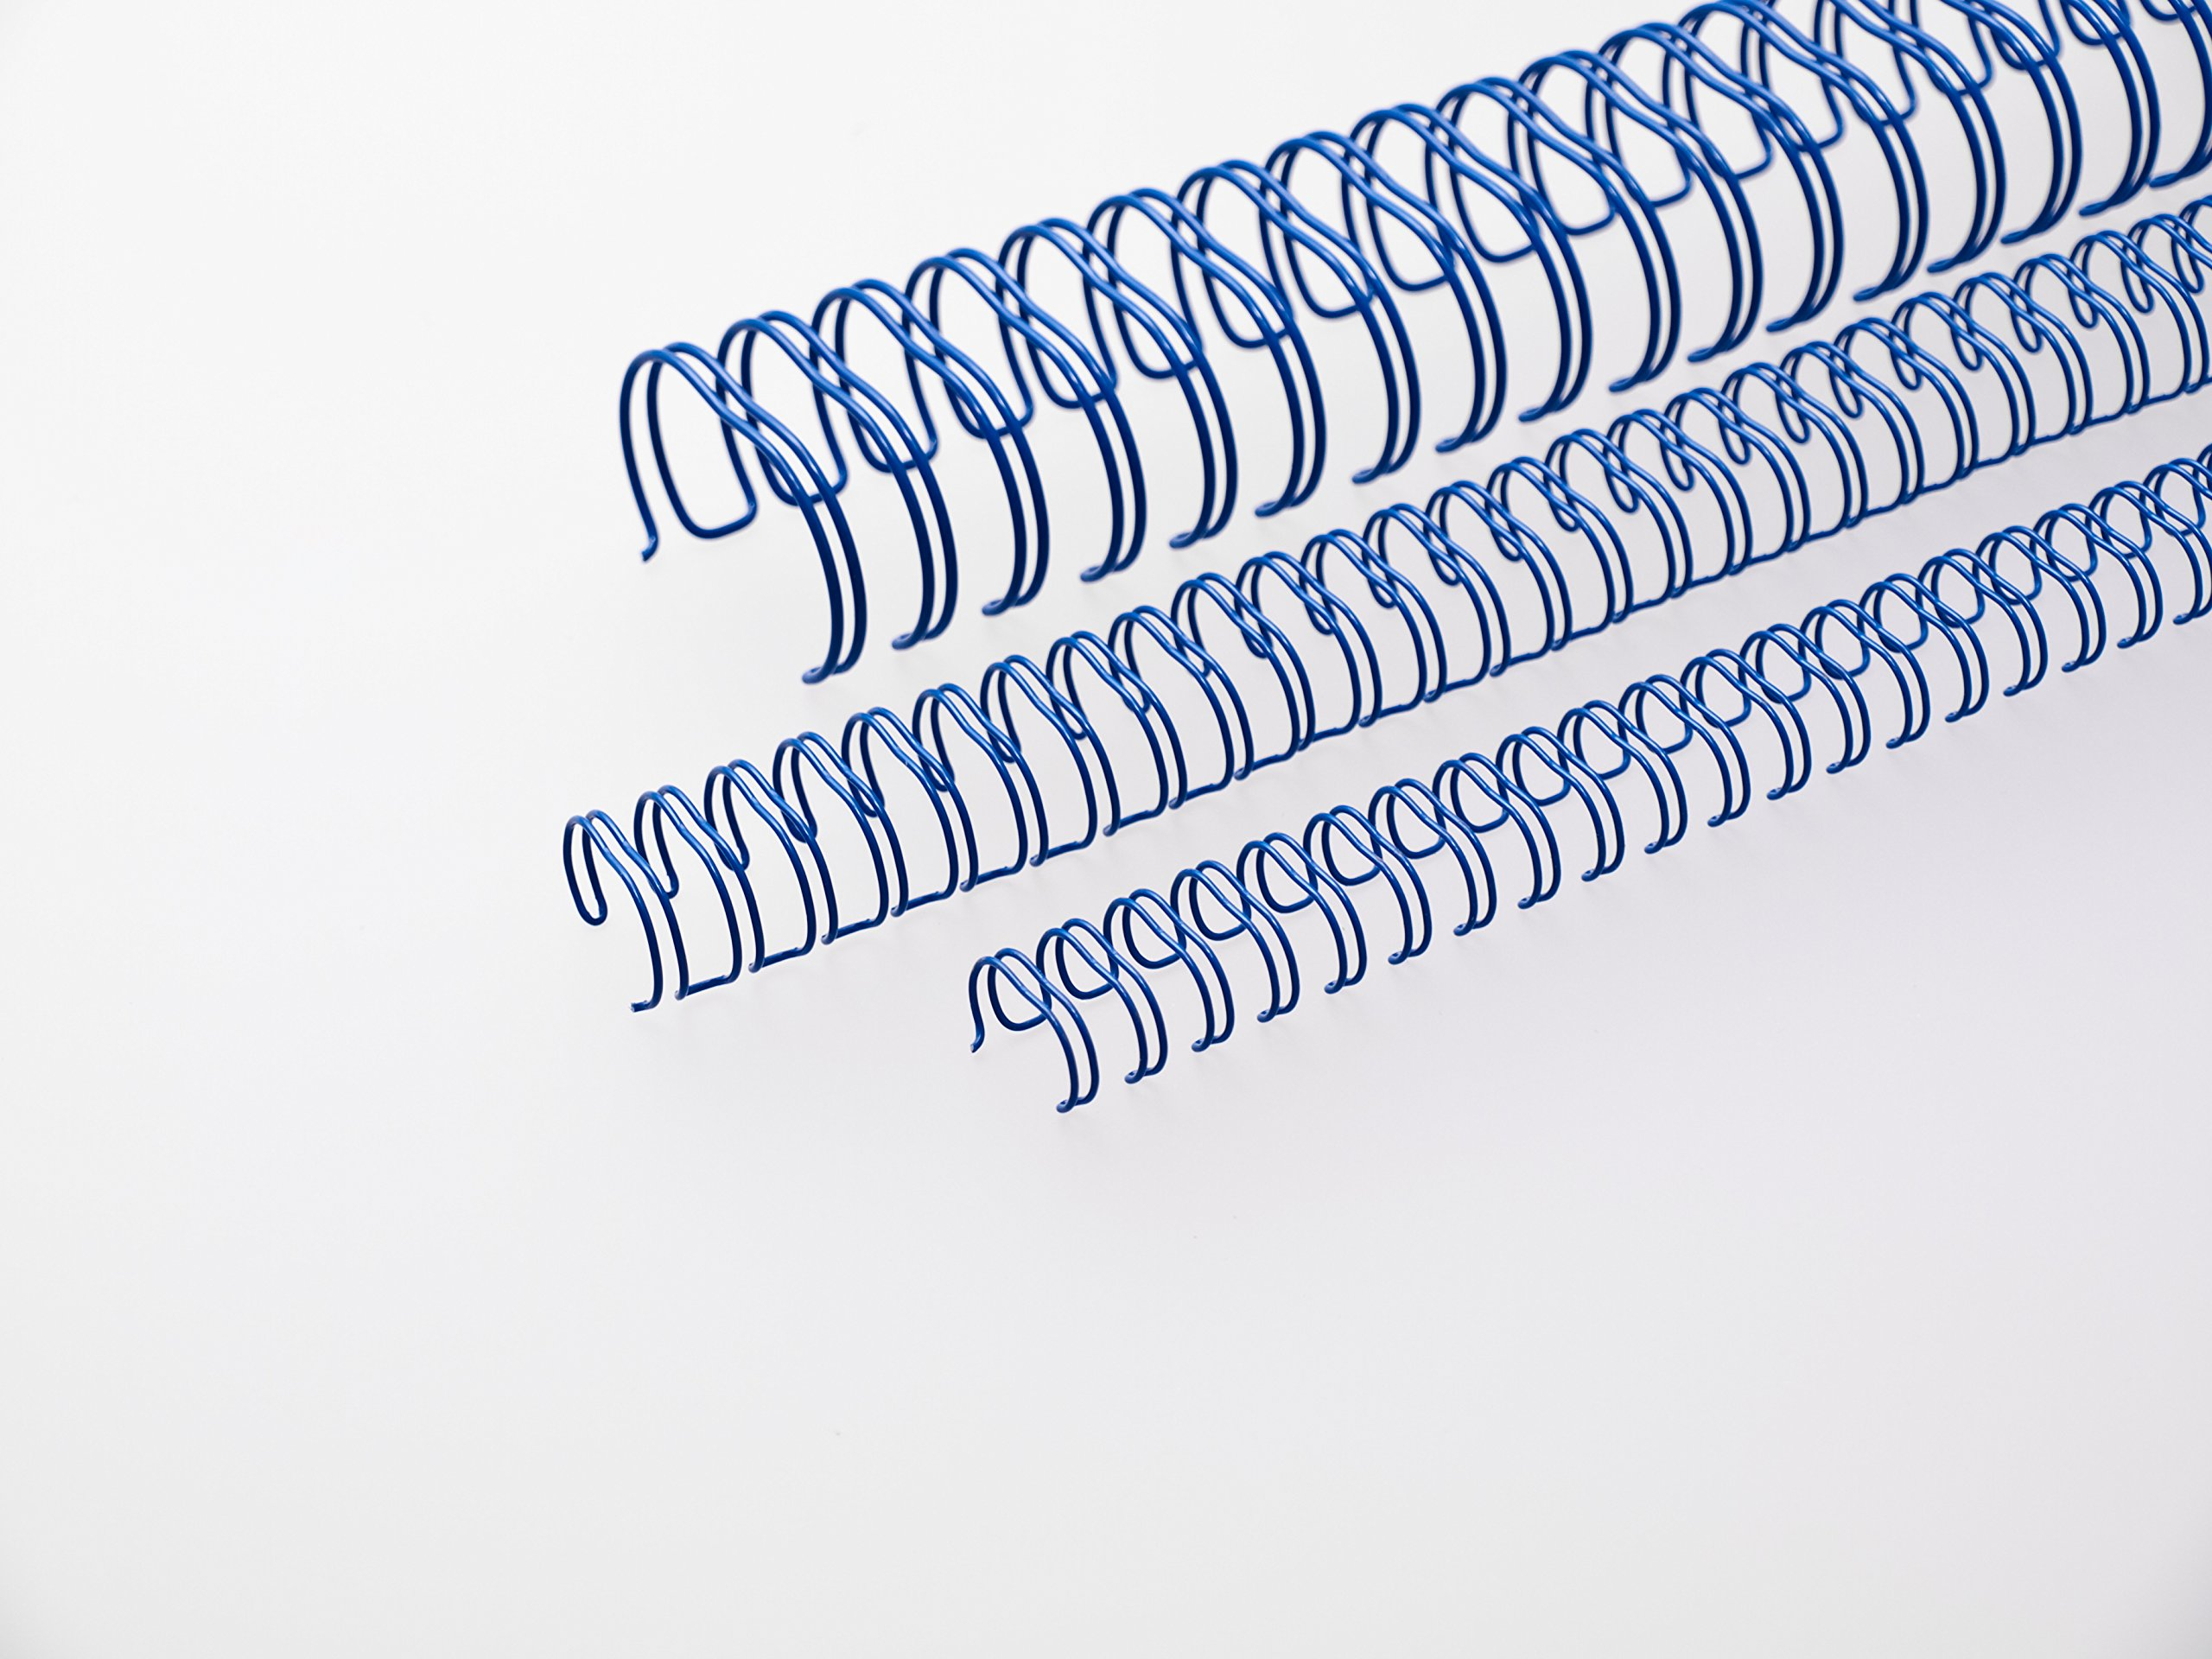 Renz 311100334 11.0 mm Ring Wire Cut Element - Blue. 3:1 Pitch. A4. 100 Wires per Box.